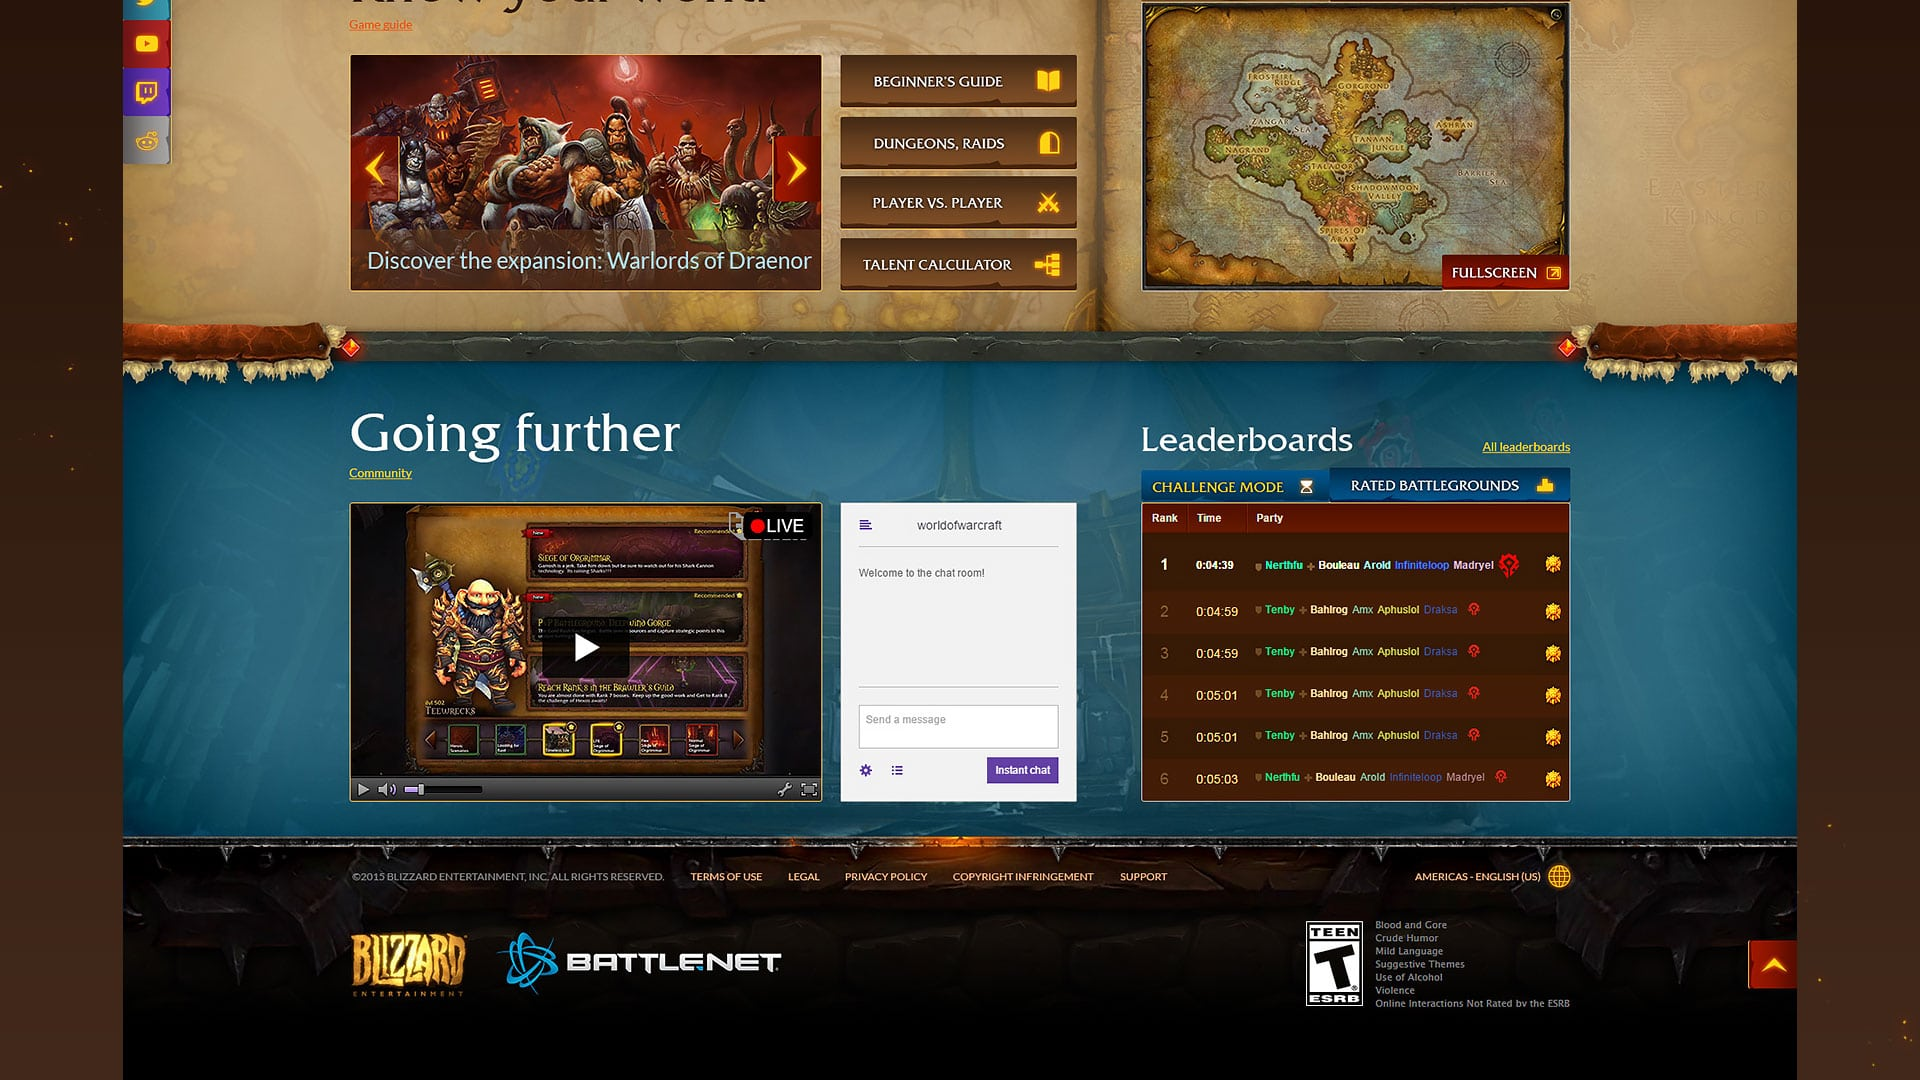 World of Warcraft - Redesigned homepage